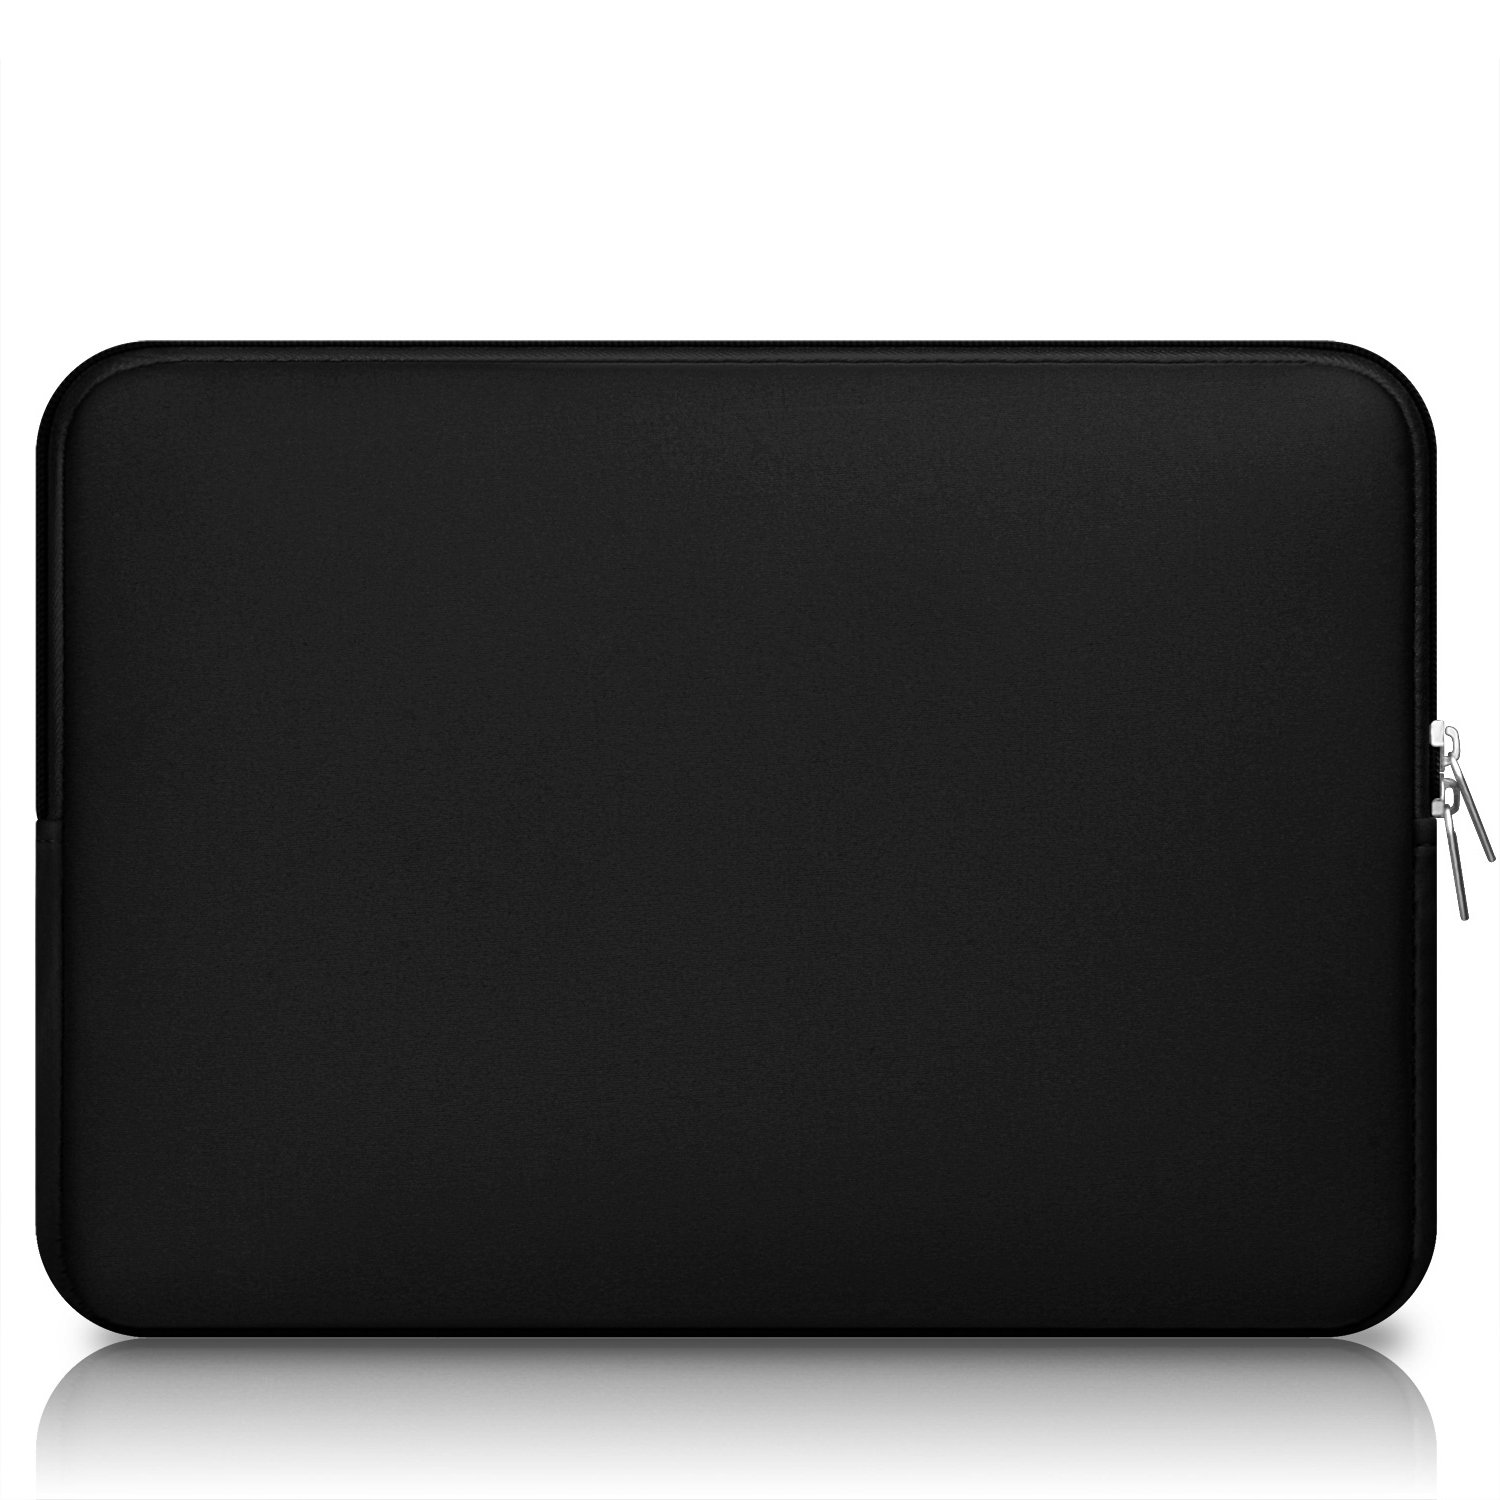 """CCPK 13"""" Laptop Sleeve 13 Inch Cover Protective Case Compatible with Apple MacBook Air 13.3 Inch Mac Pro M1 Surface Lenovo Dell HP Bag Computer Pouch Accessories Travel Carrying Case Neoprene, Black"""